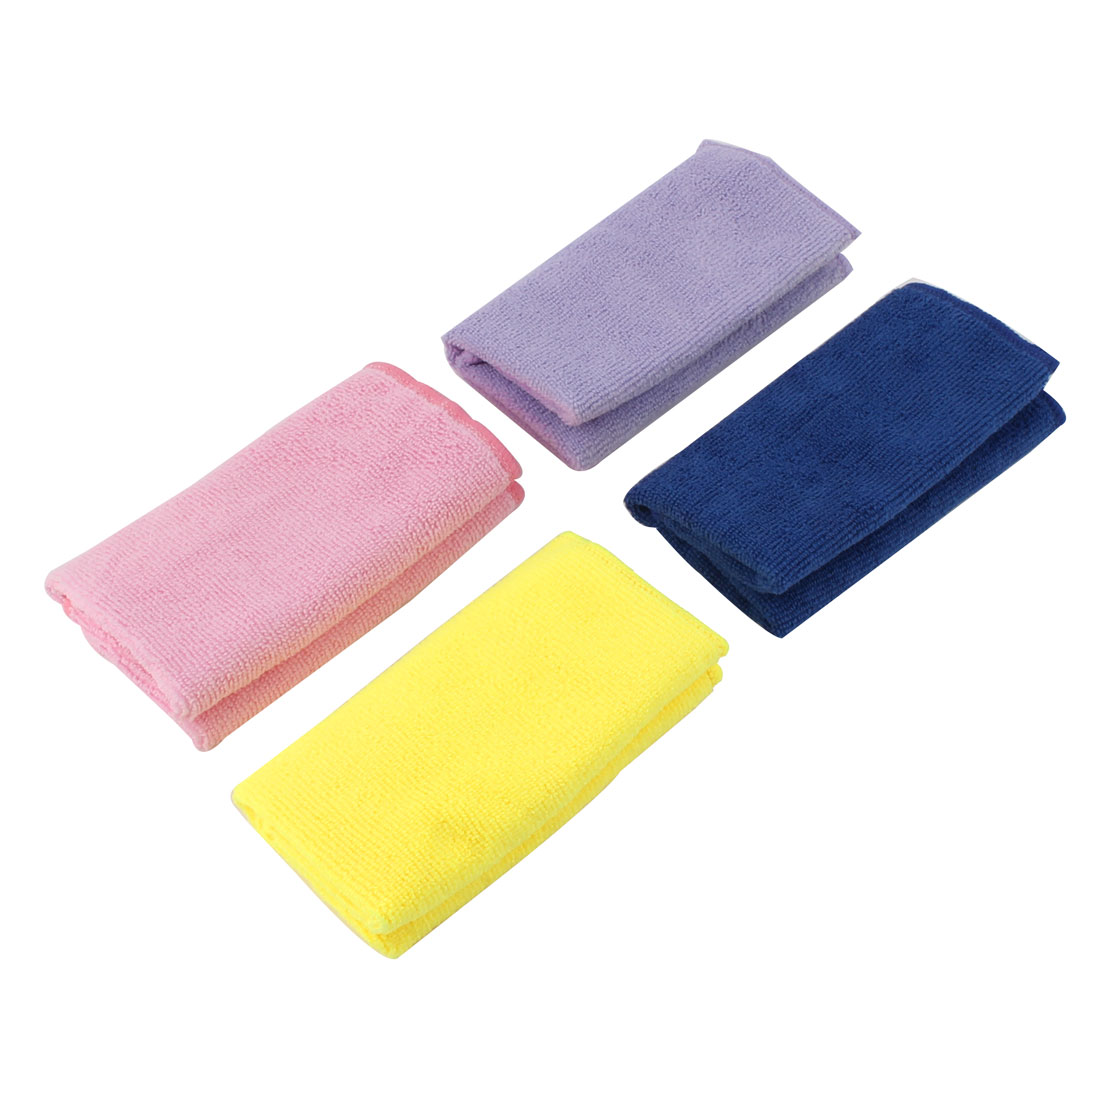 Household Fibre Dish Cleaning Cloth Cleaner Assorted Color 30cm x 30cm 4 Pcs